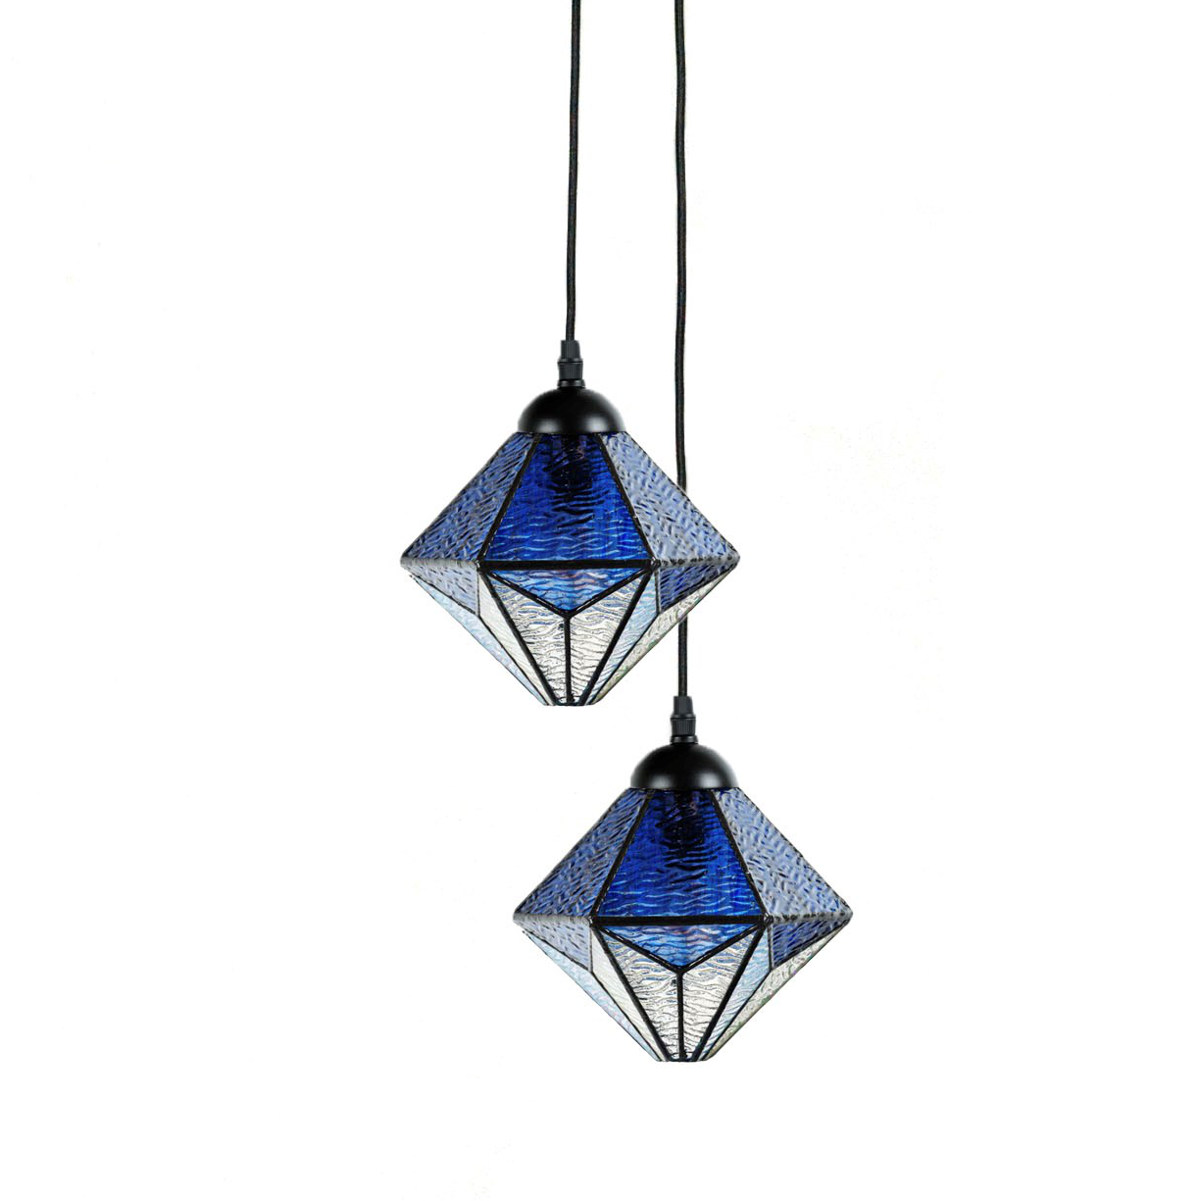 Cluster Of Tiffany Pendant Lights Made Of Blue Water Glass Casa Lumi